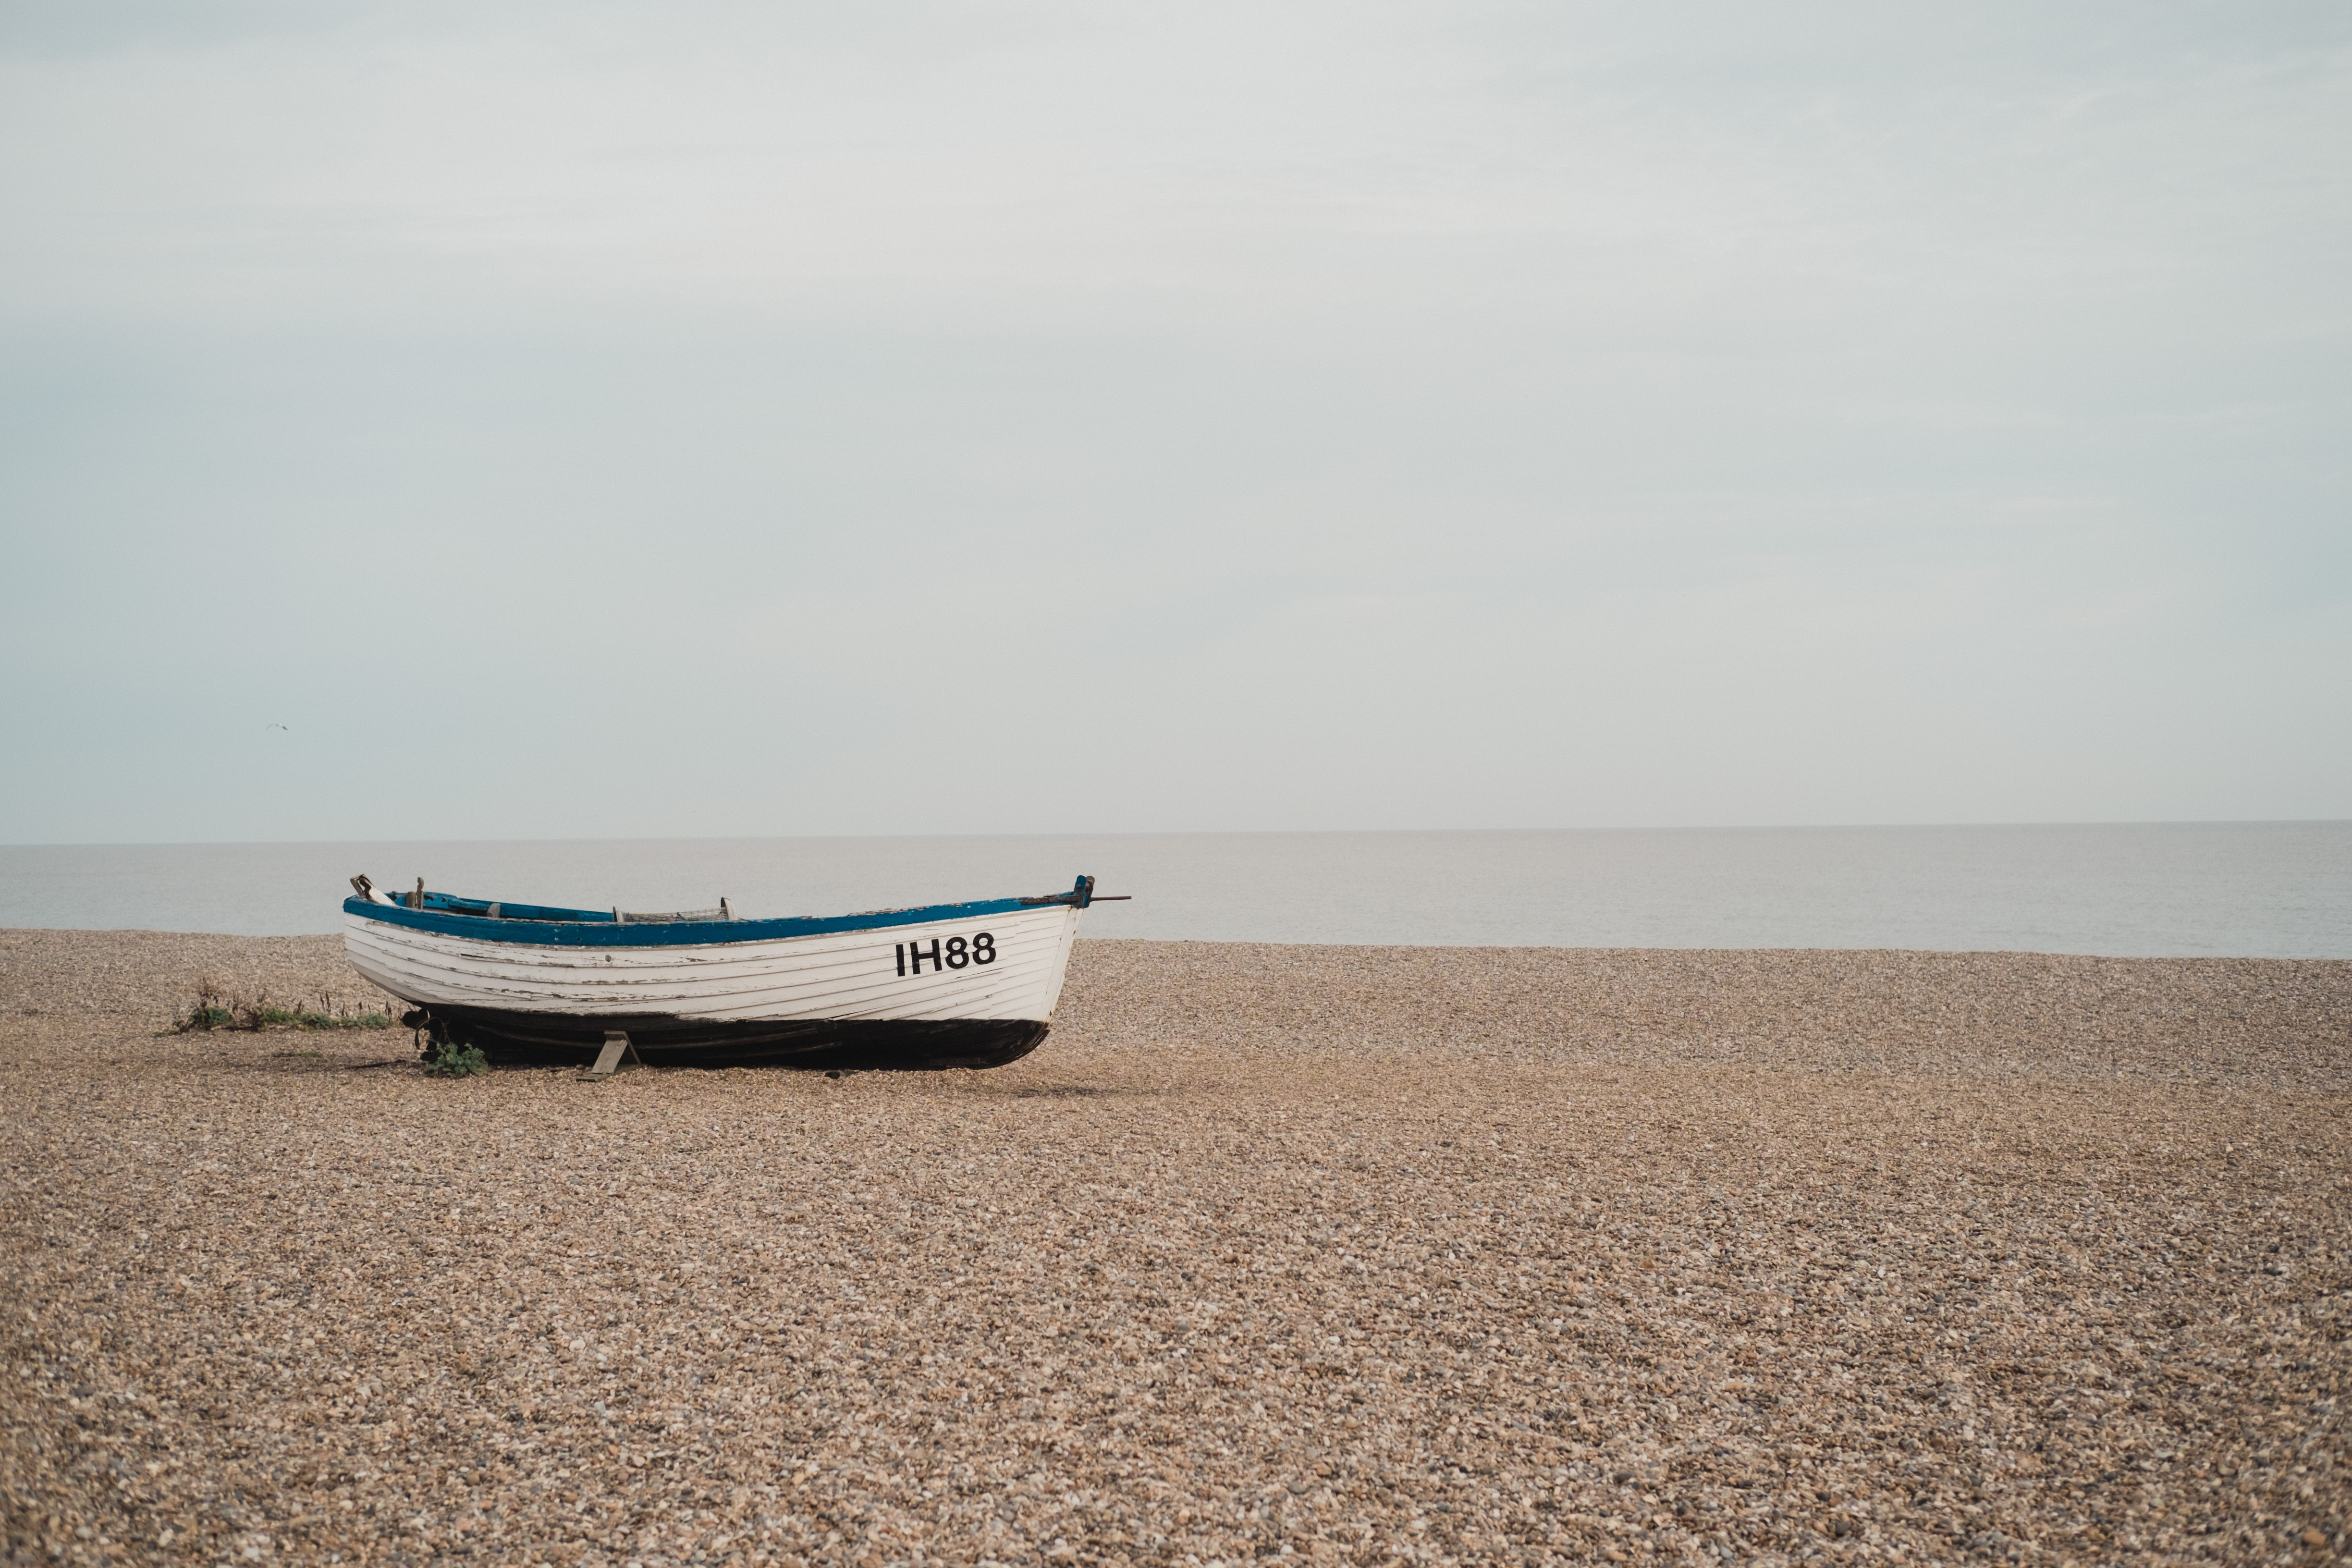 white and blue IH88 rowboat on sand beside large body of water